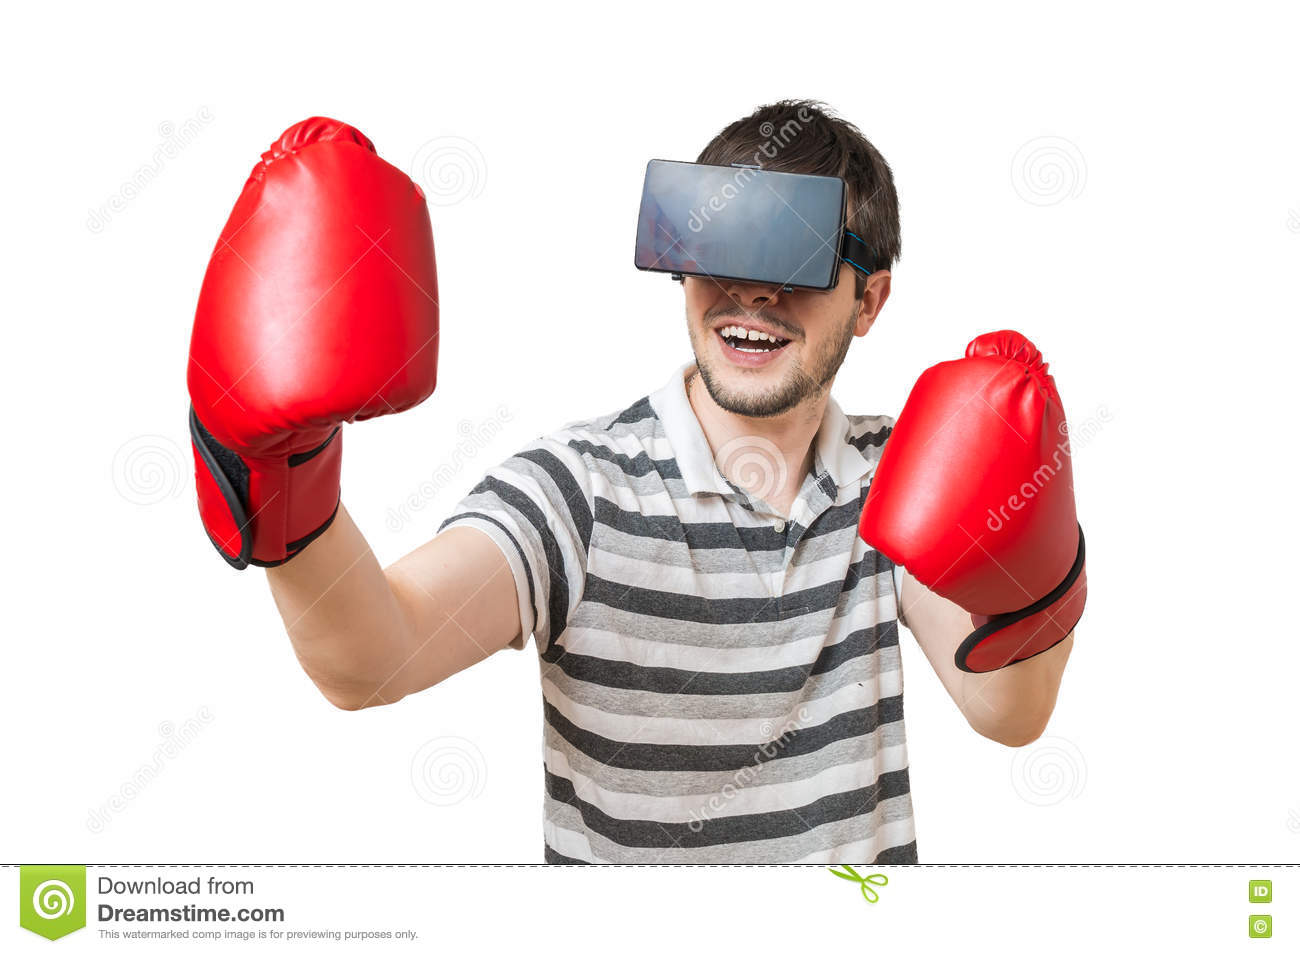 7ee472904143 Man Is Boxing In 3D Virtual Reality Video Game With Vr Headset ...